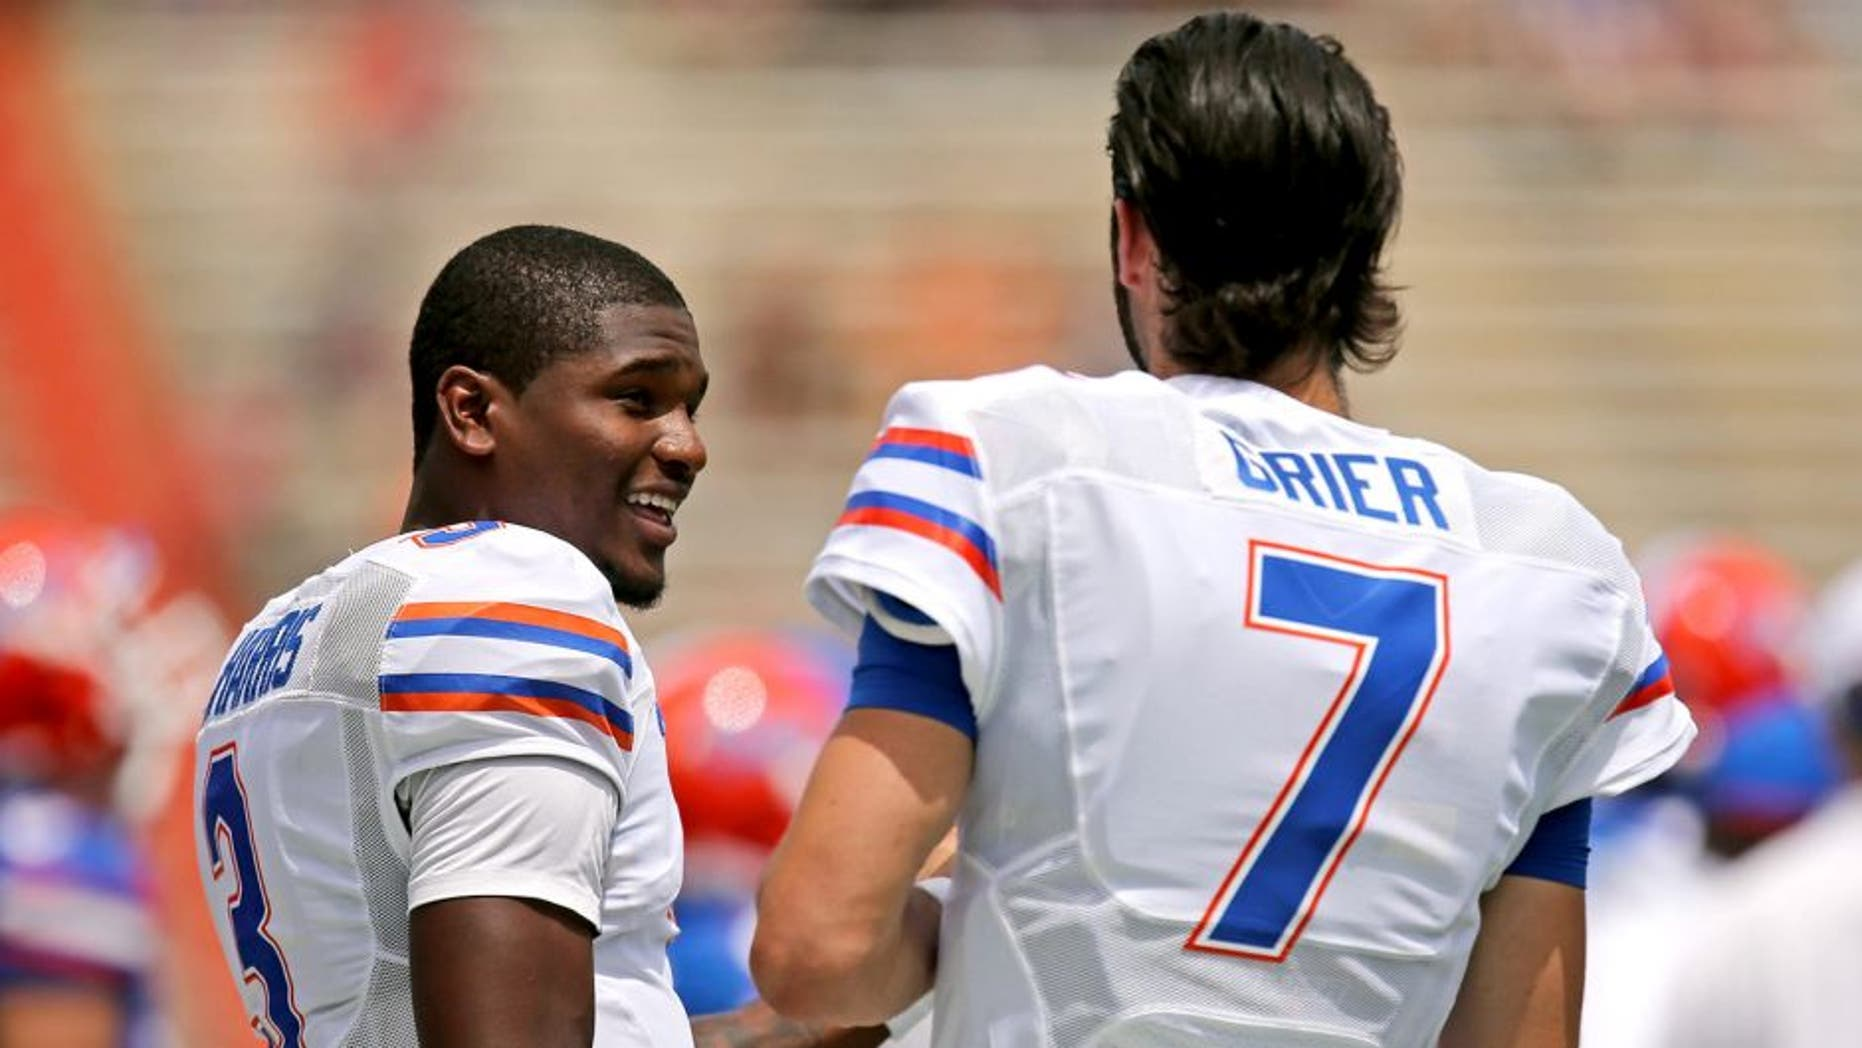 GAINESVILLE, FL - APRIL 11: Florida Gators quarterbacks Treon Harris #3 and Will Grier #7 talk on the sidelines during the Orange and Blue Debut spring football game on April 11, 2015 in Gainesville, Florida. (Photo by Rob Foldy/Getty Images)